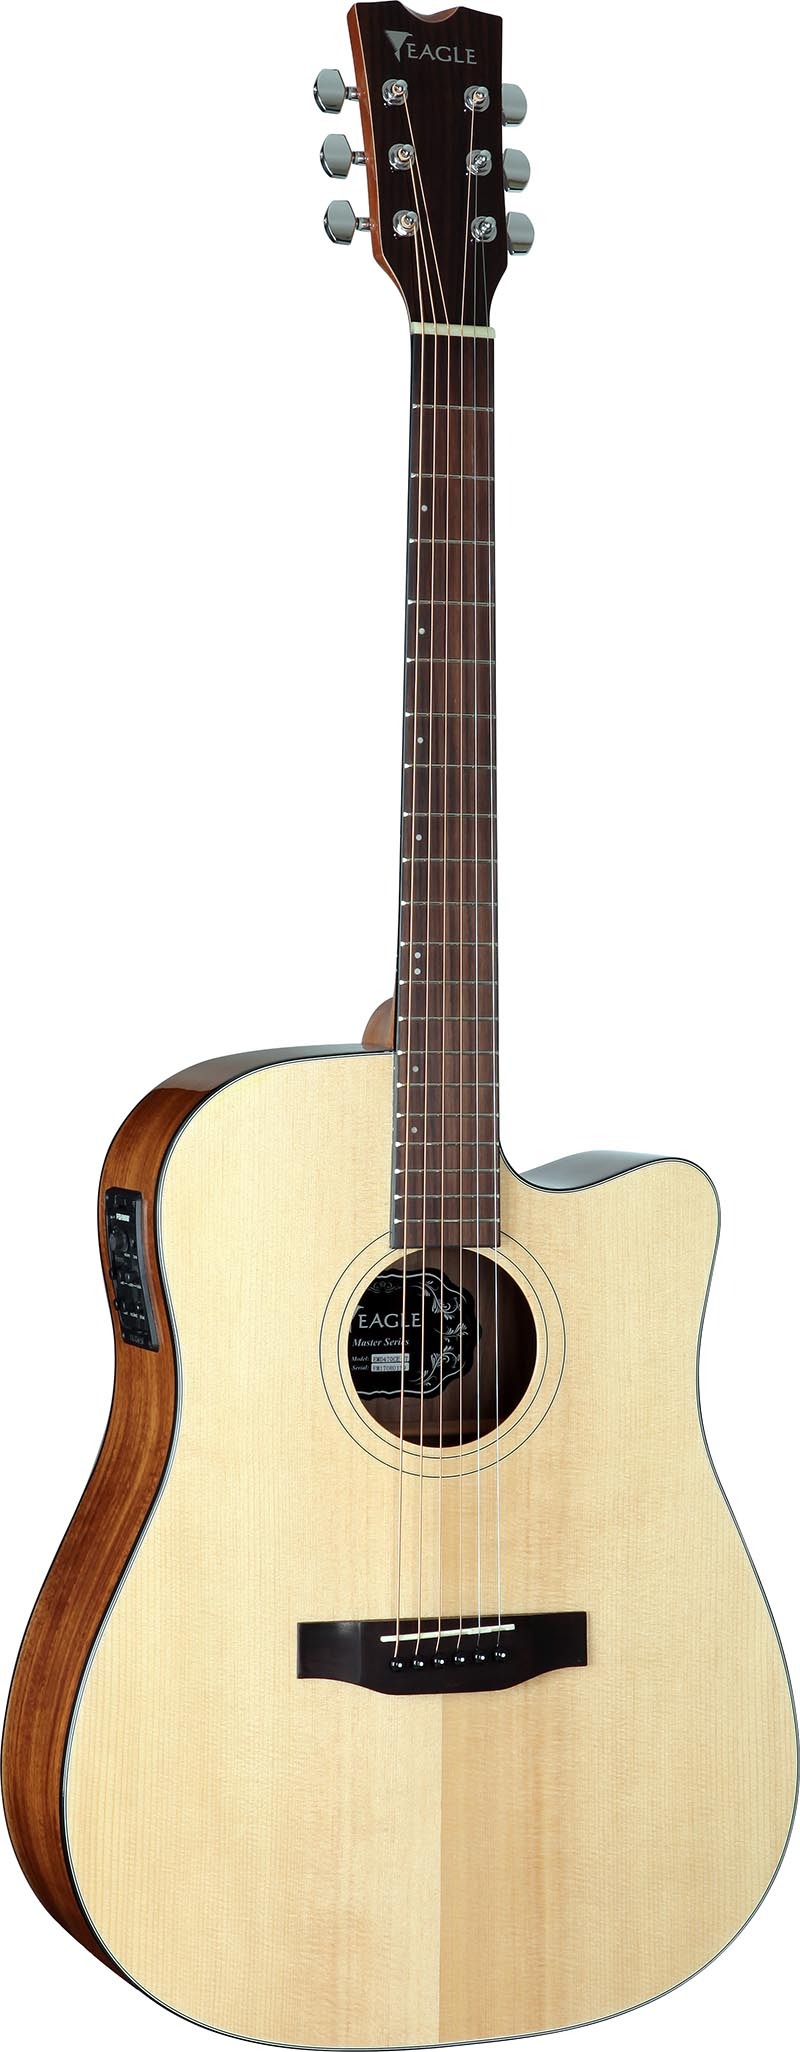 emd470ce violao folk dreadnought tampo solido eagle emd470ce nt natural visao frontal vertical